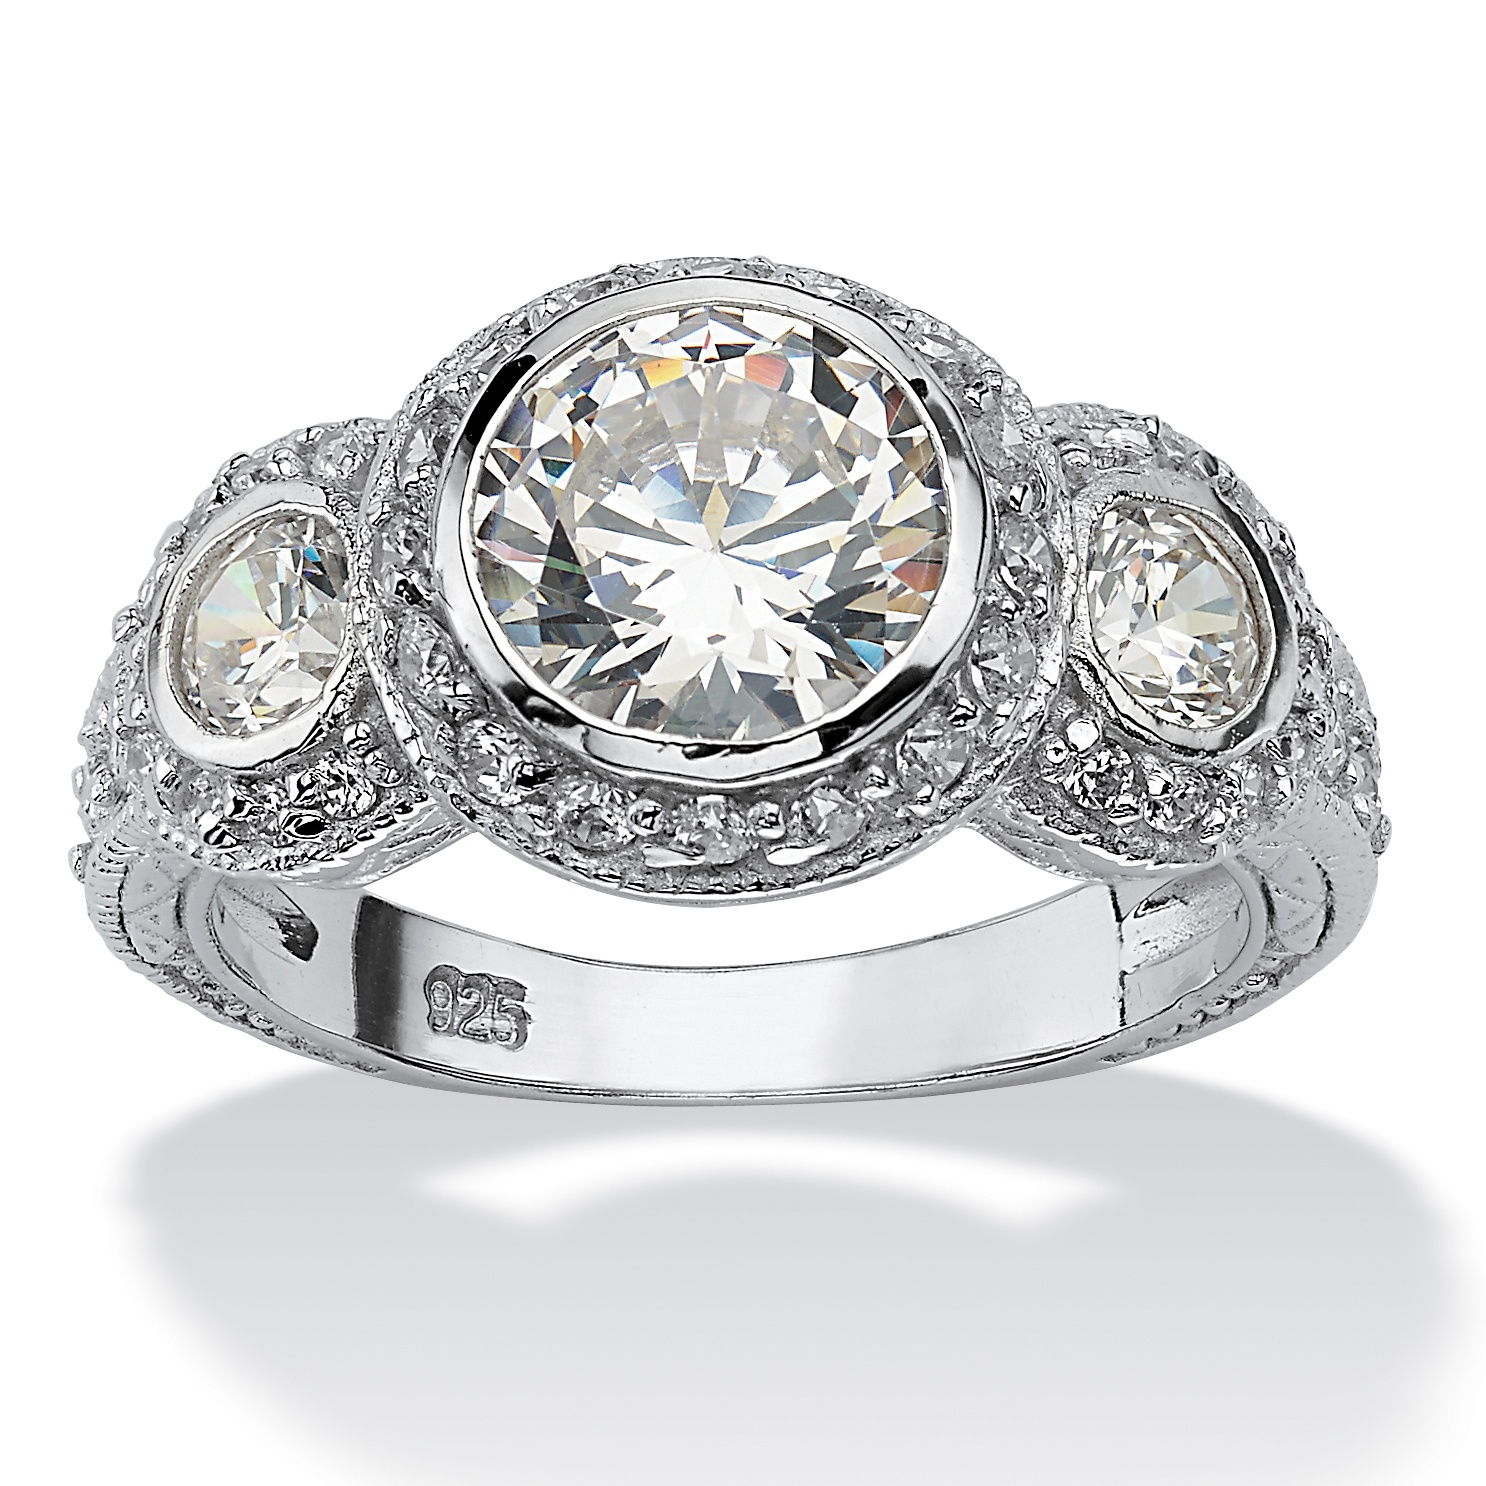 310 TCW Round Cubic Zirconia Sterling Silver Anniversary